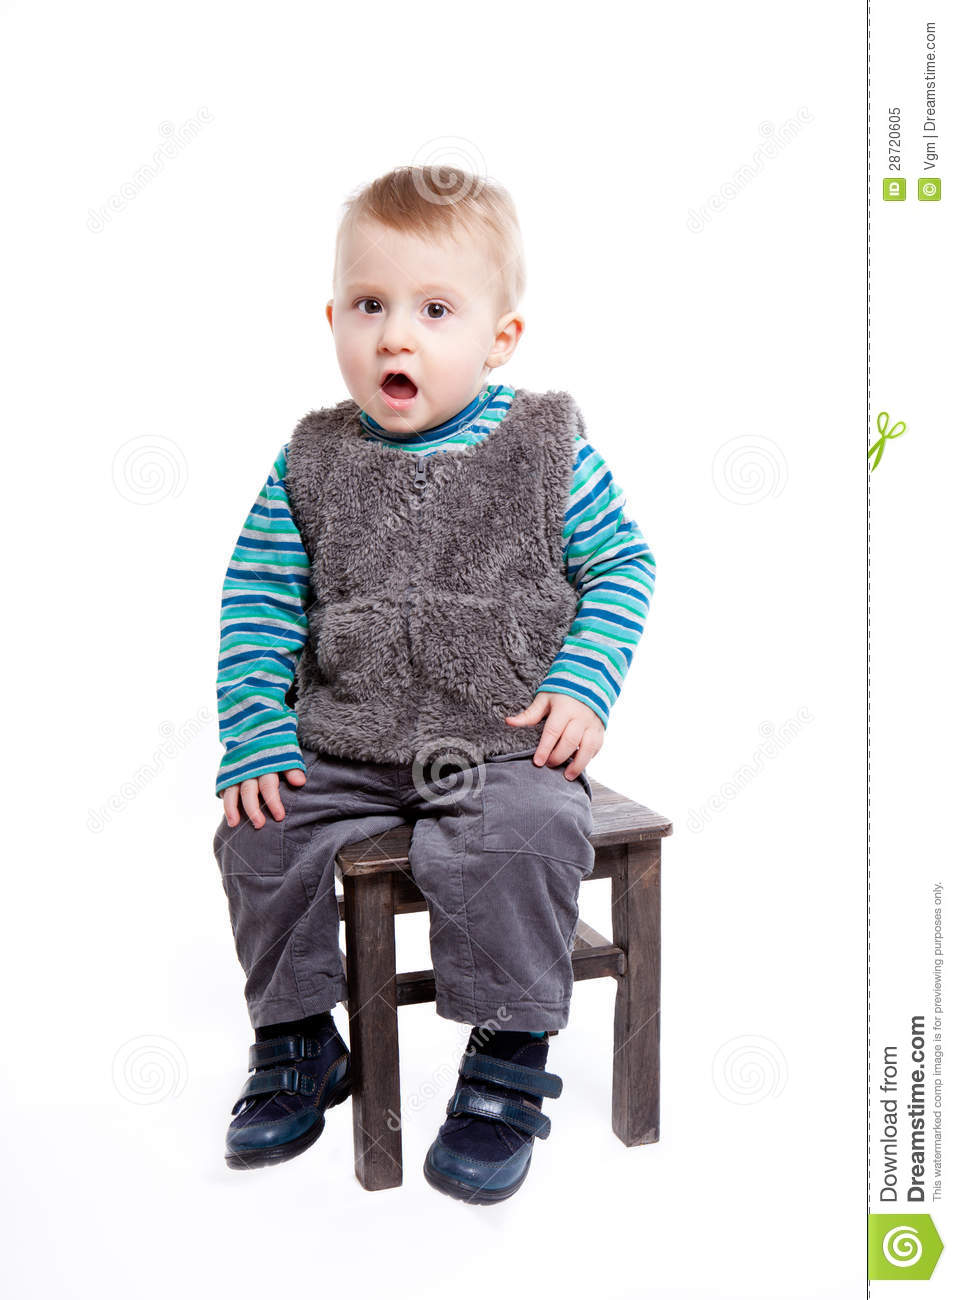 Baby boy sitting on a chair royalty free stock photo for Toddler sitting chair